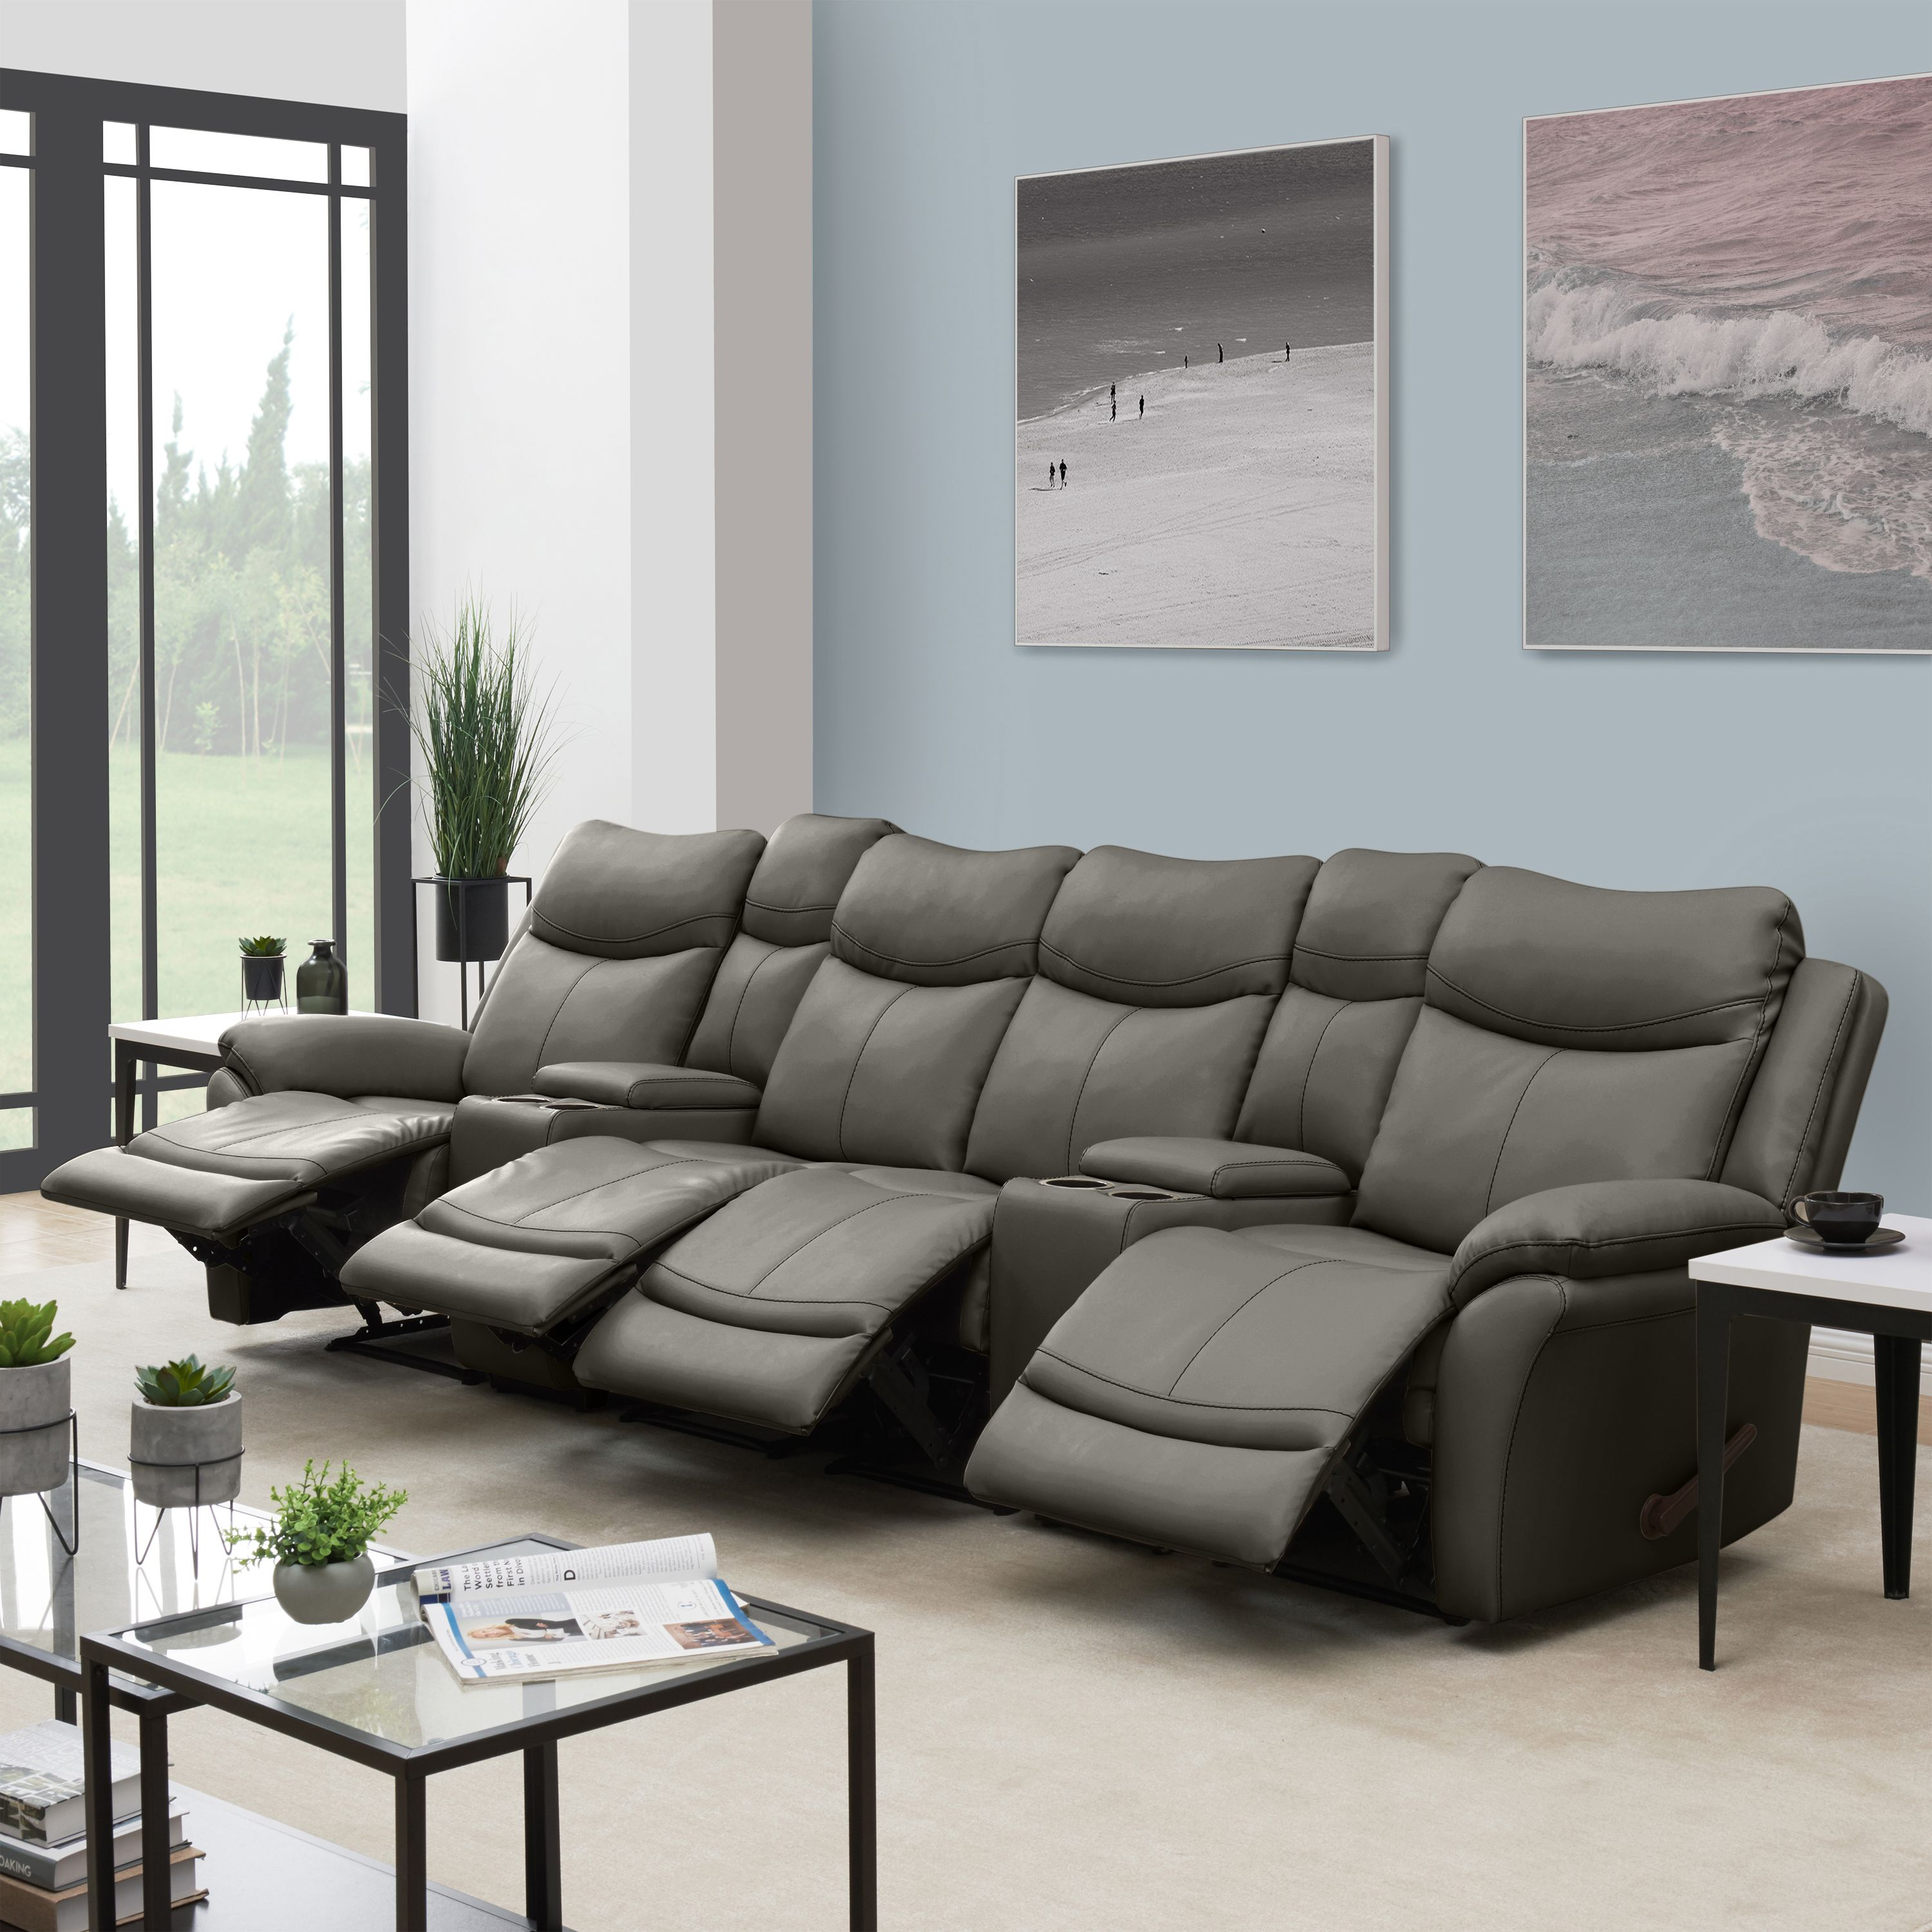 ProLounger Wall Hugger Storage Reclining Sofa in Taupe